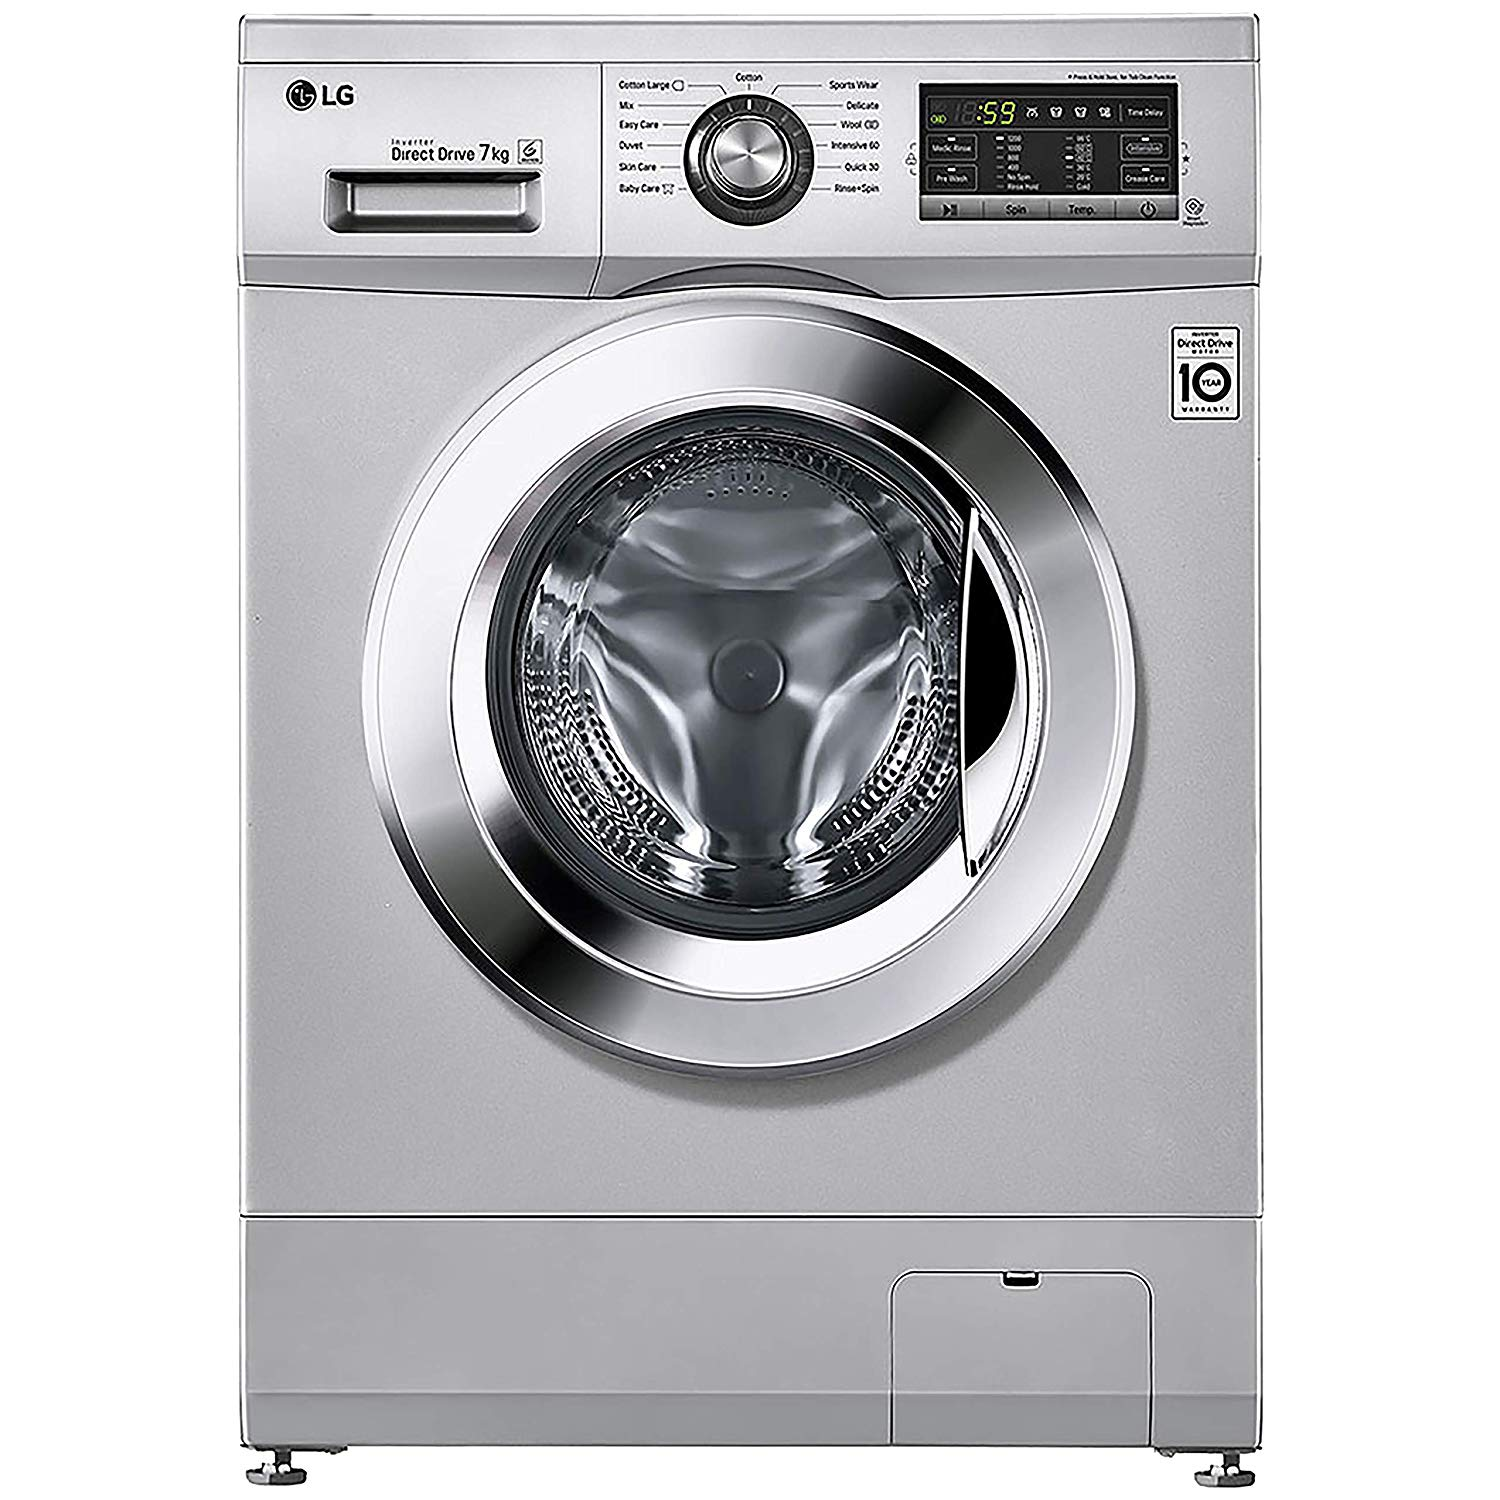 LG FH2G6HDNL42 Fully-Automatic Front Loading Washing Machine